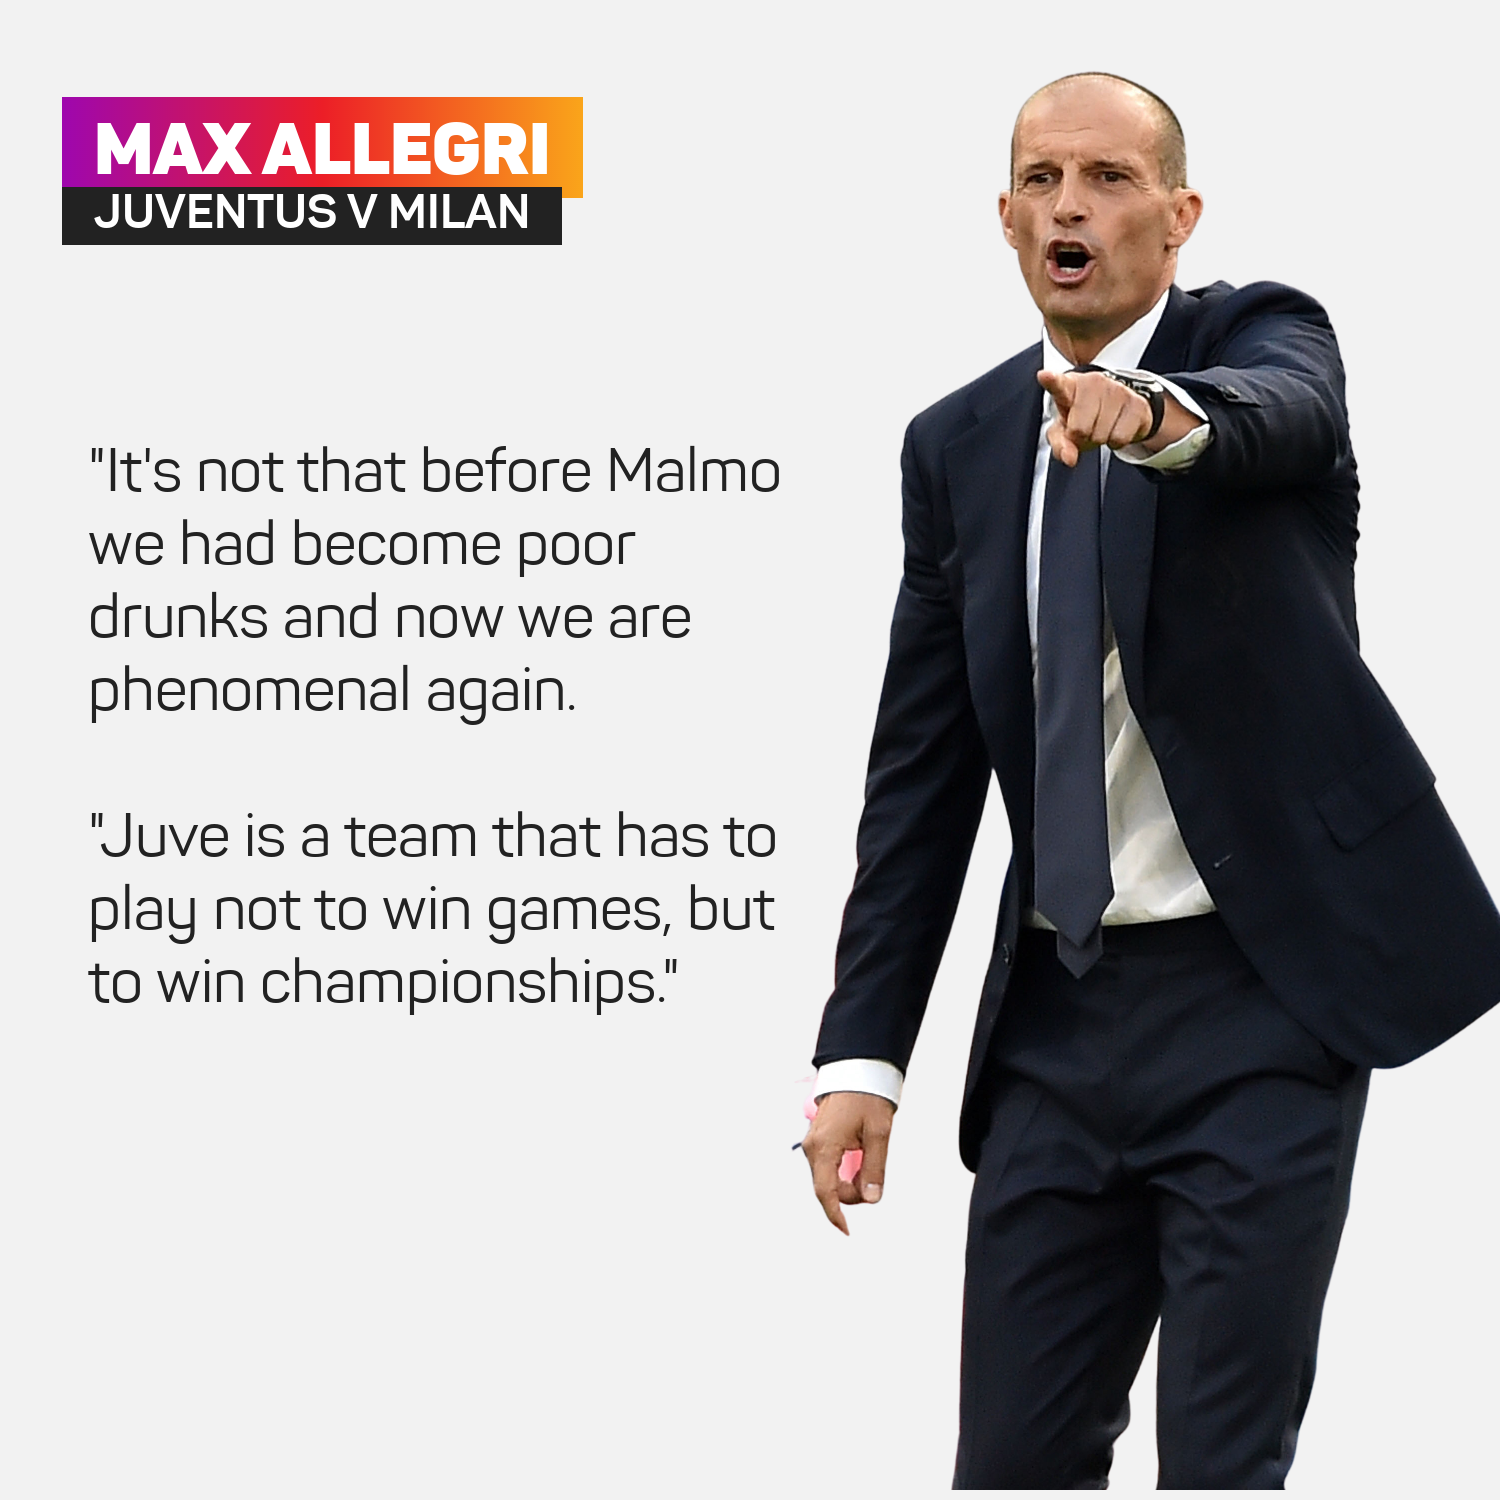 Massimiliano Allegri is warning Juventus not to get complacent after their Champions League win